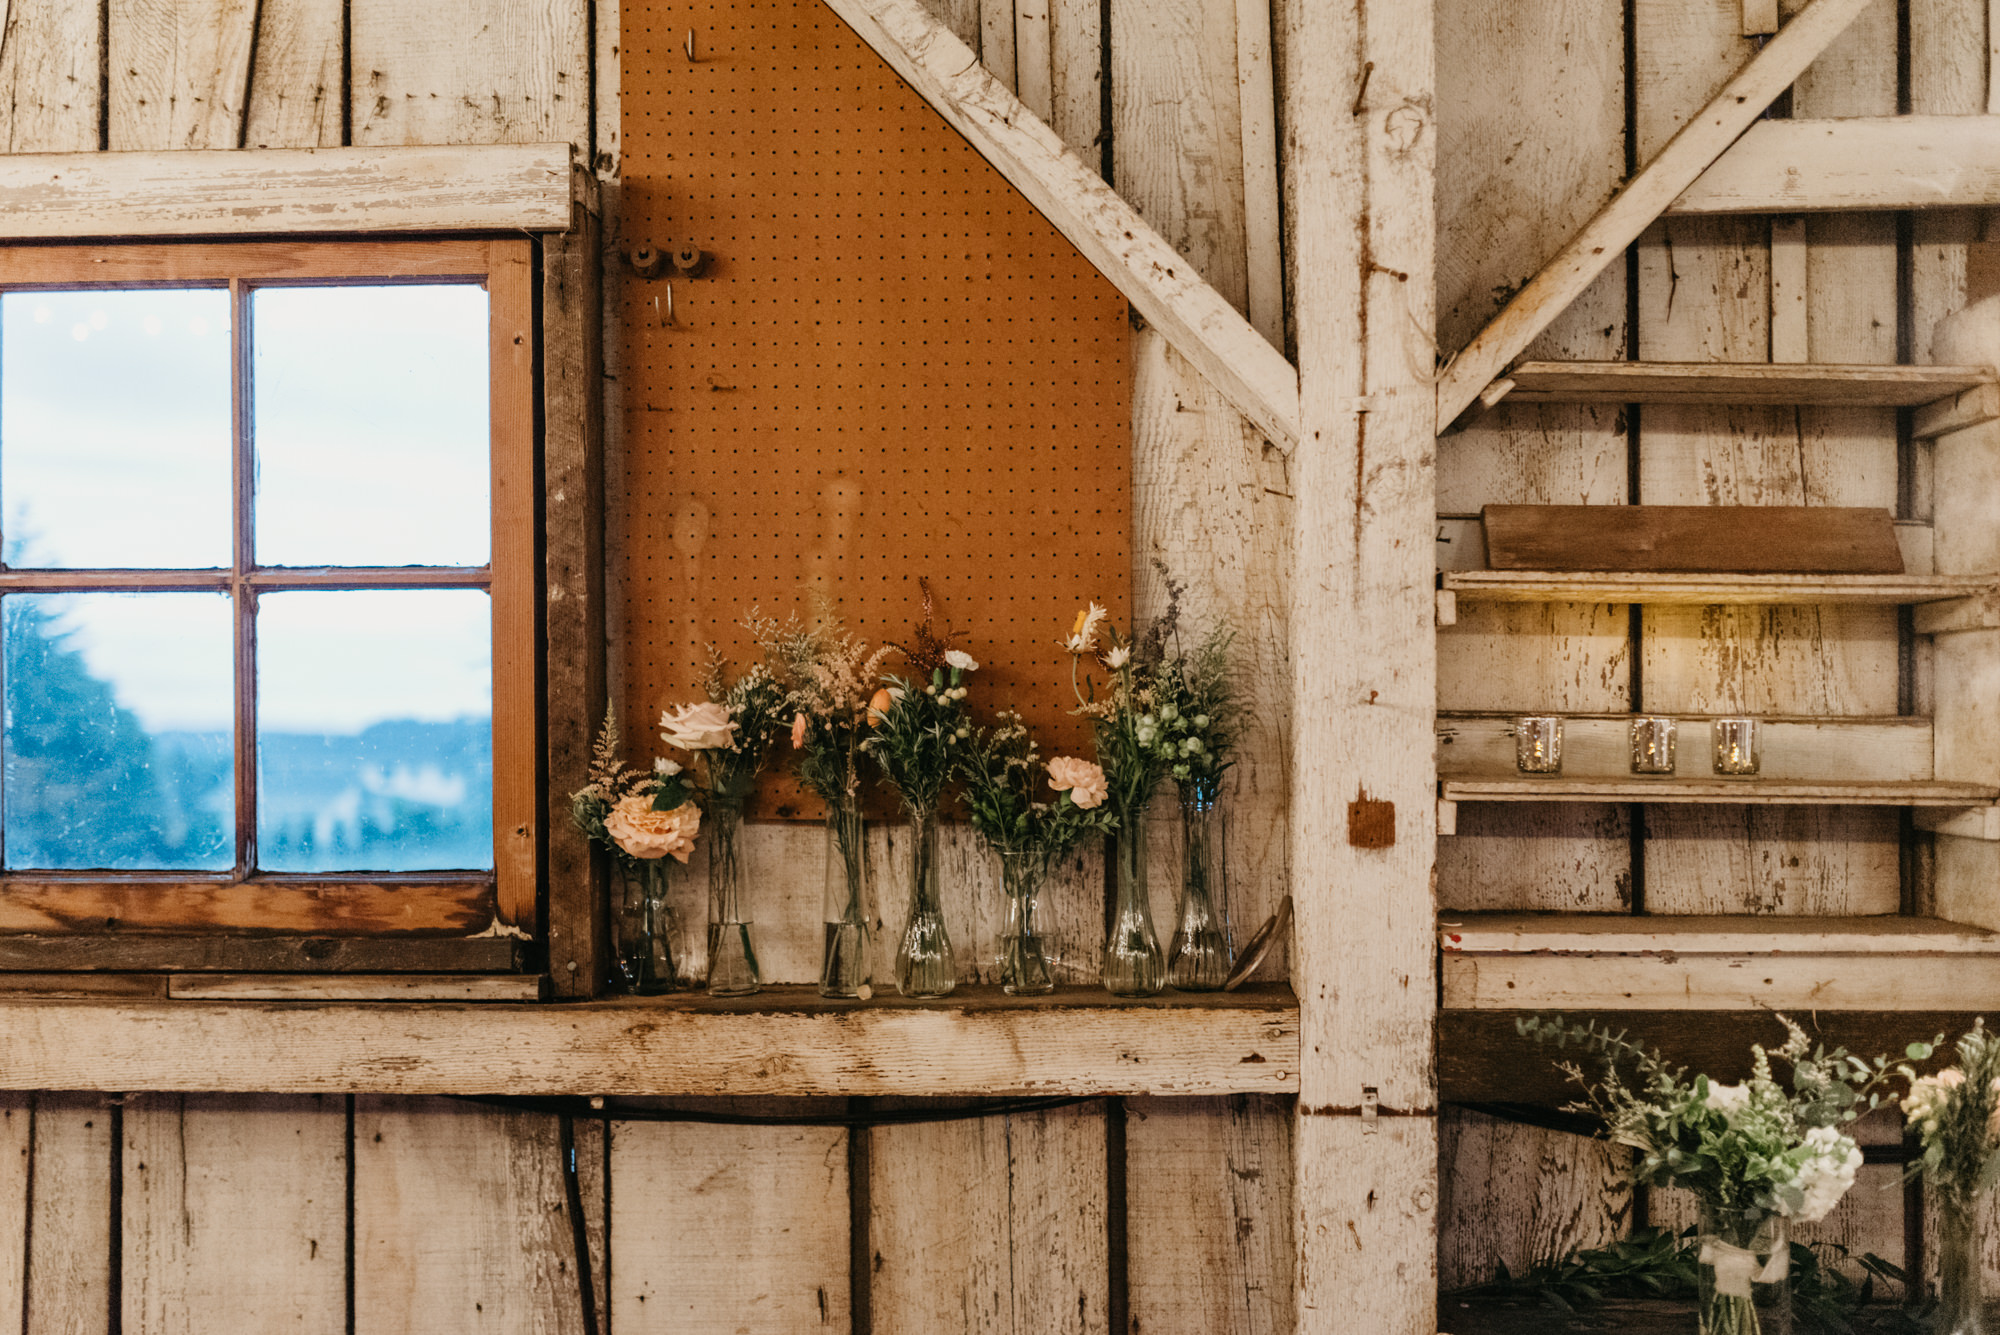 213-portland-northwest-wedding-bubble-exit-barn-string-lights.jpg